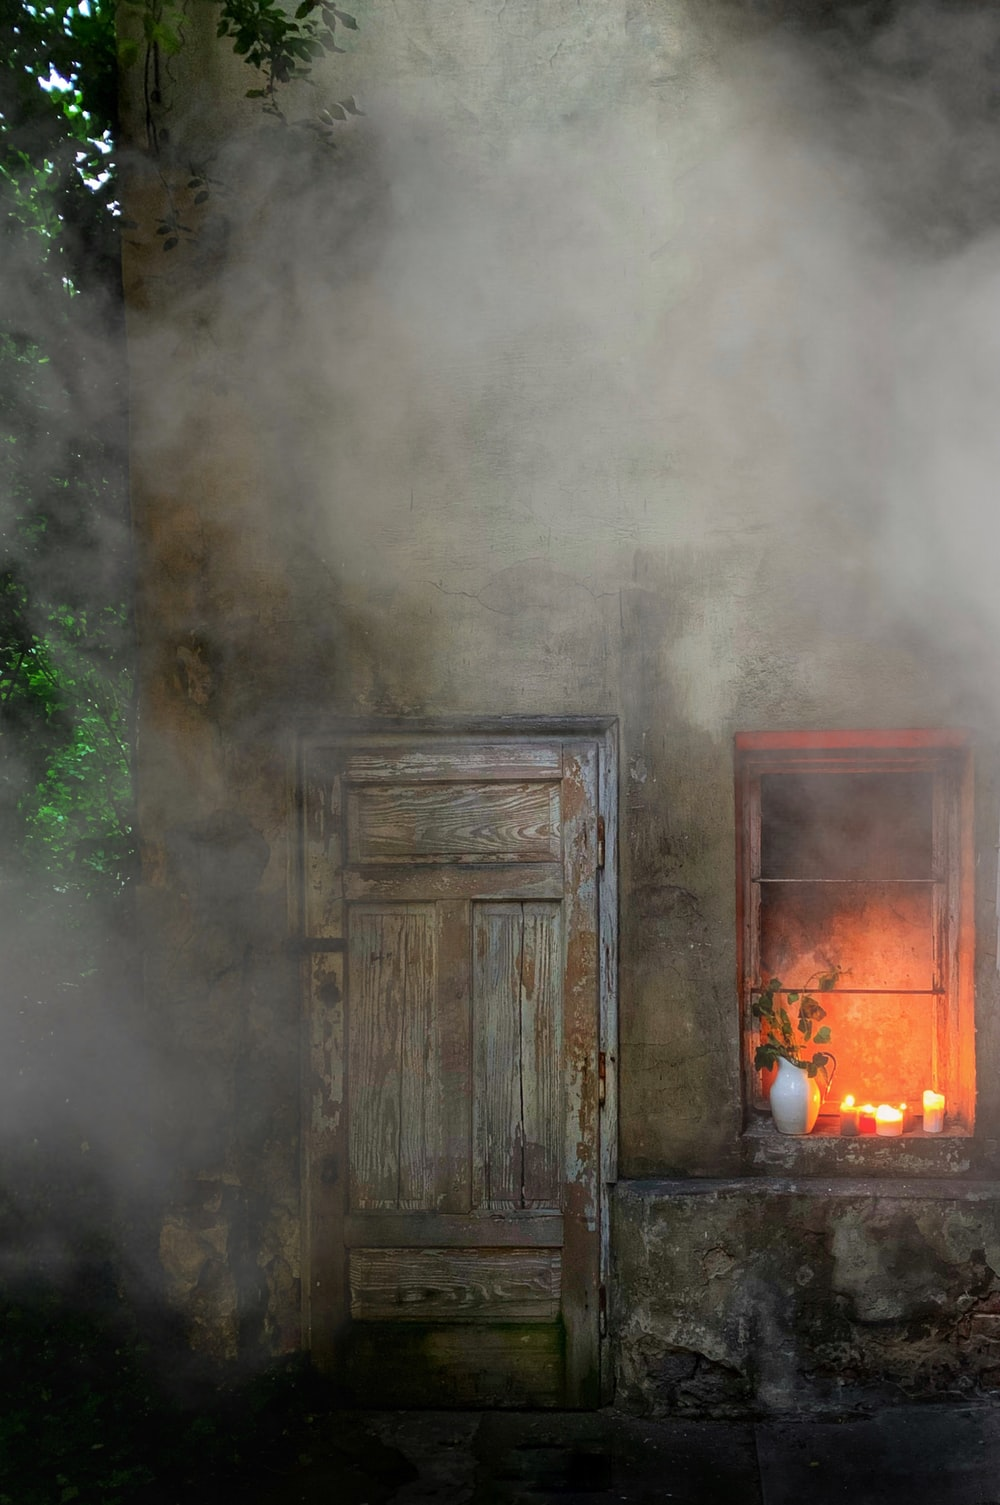 time-lapse photography of smoke coming from a burning house